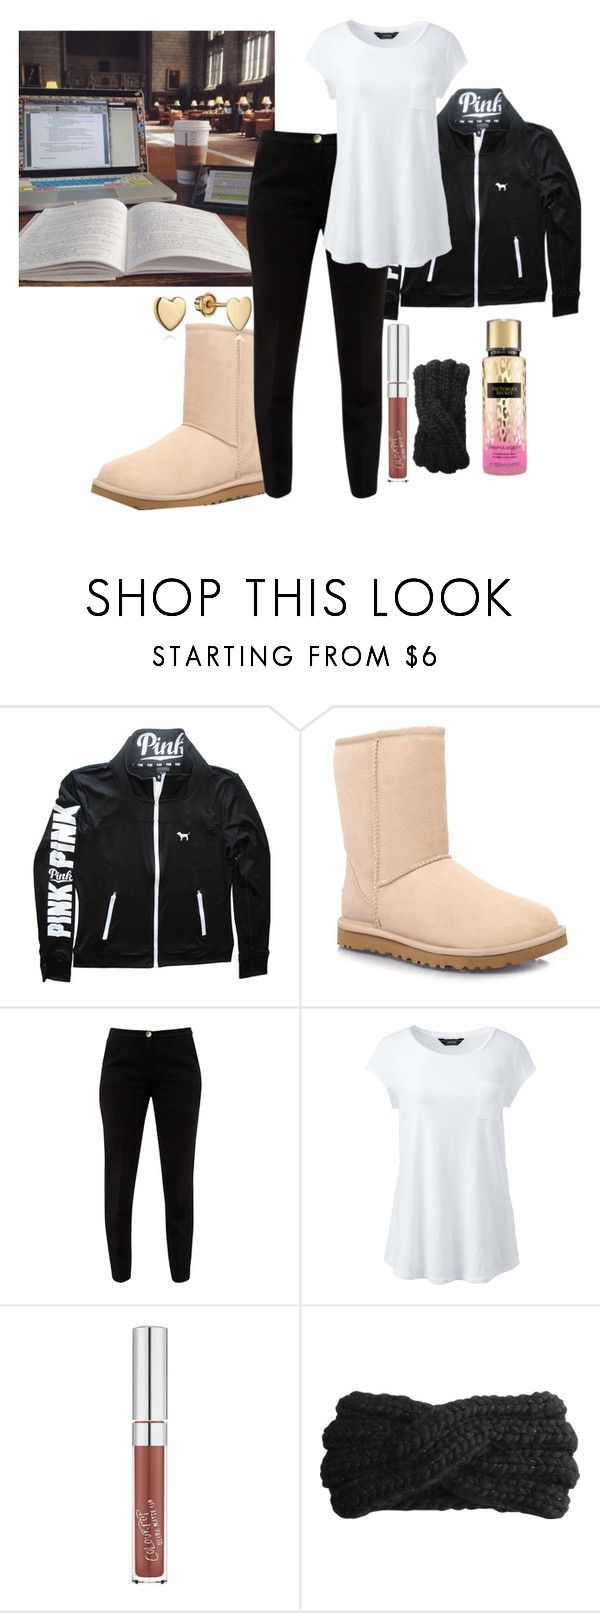 """""""Untitled #667"""" by shaniaa093 ❤ liked on Polyvore featuring Victoria's Secret, UGG Australia, Ted Baker, Lands' End, Eugenia Kim and plus size clothing"""